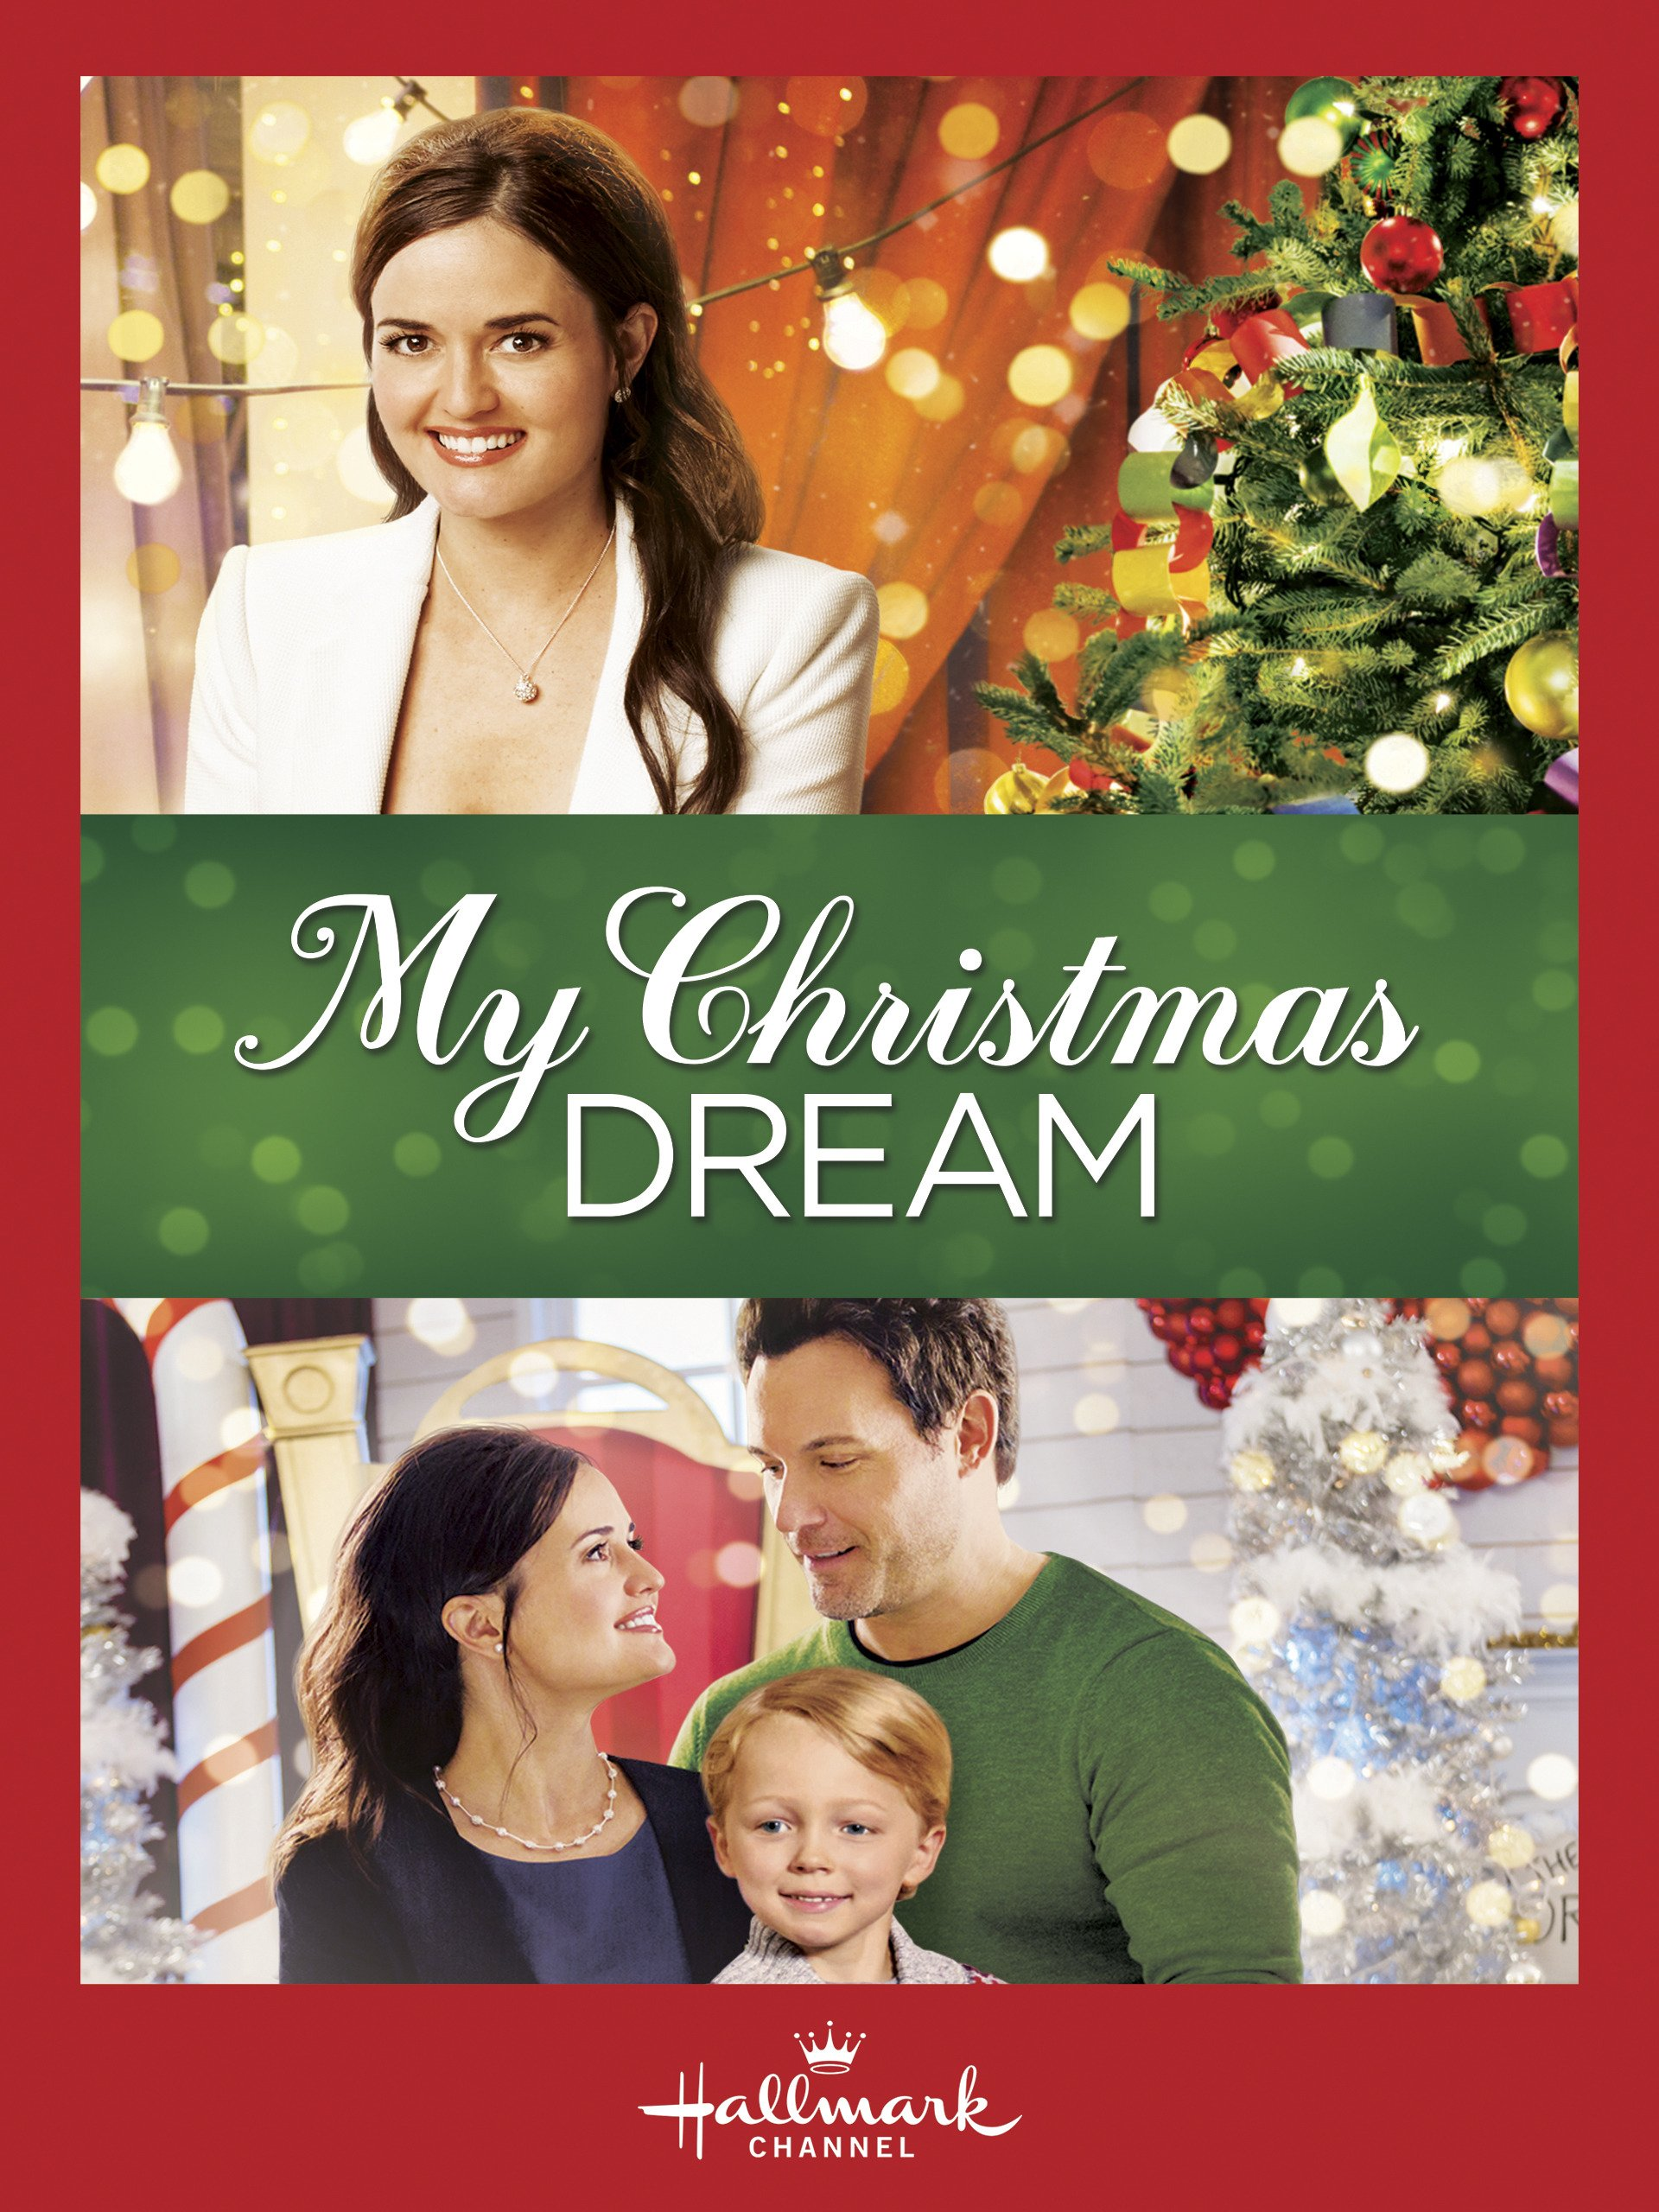 amazoncom my christmas dream danica mckellar david haydn jones deidre hall james head amazon digital services llc